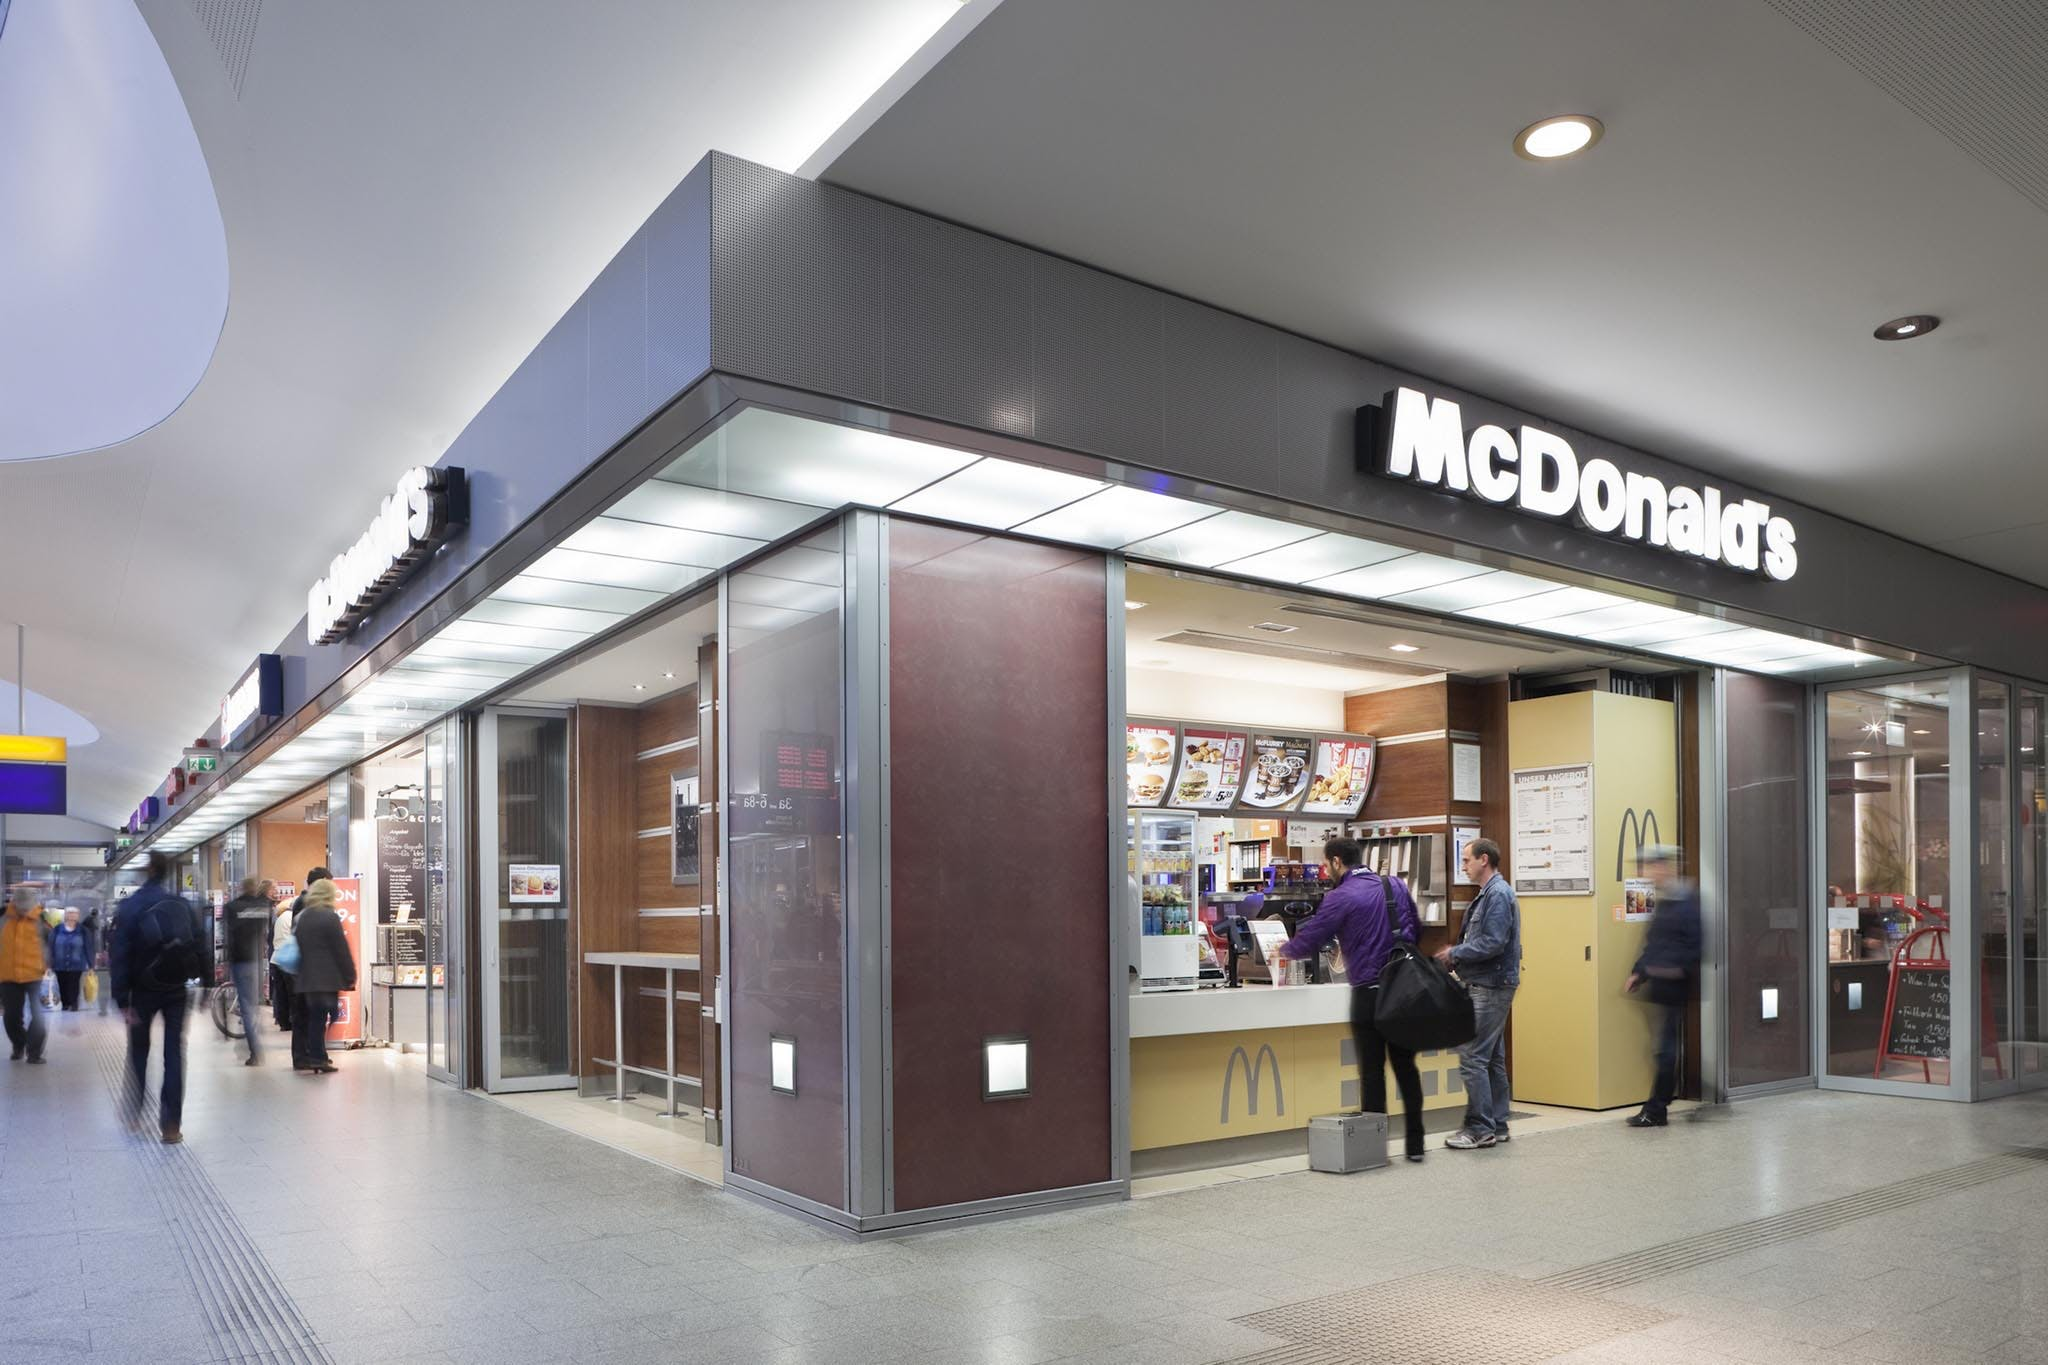 man standing near open interior commercial glass systems used as storefront for McDonalds